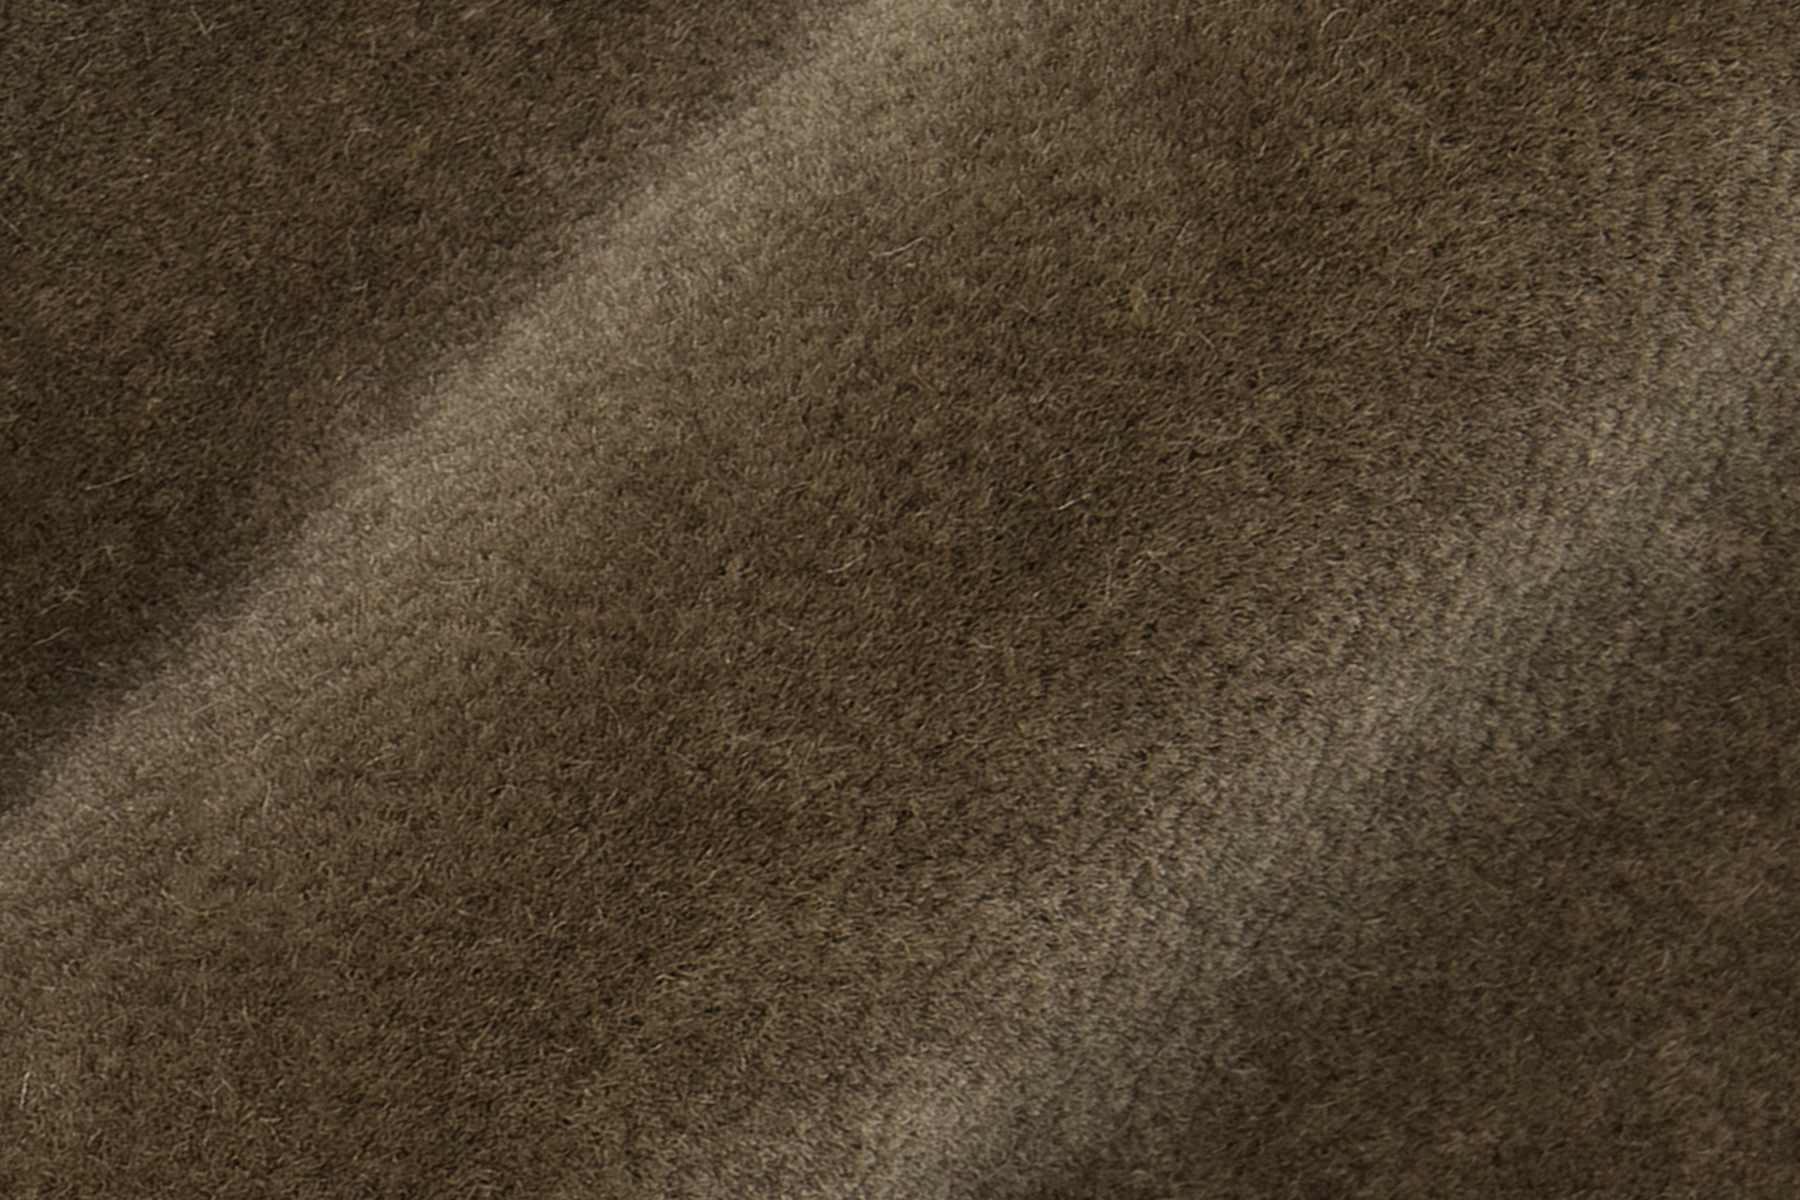 LUX VELVET 0074 WARM TAUPE Fabric by KOKET